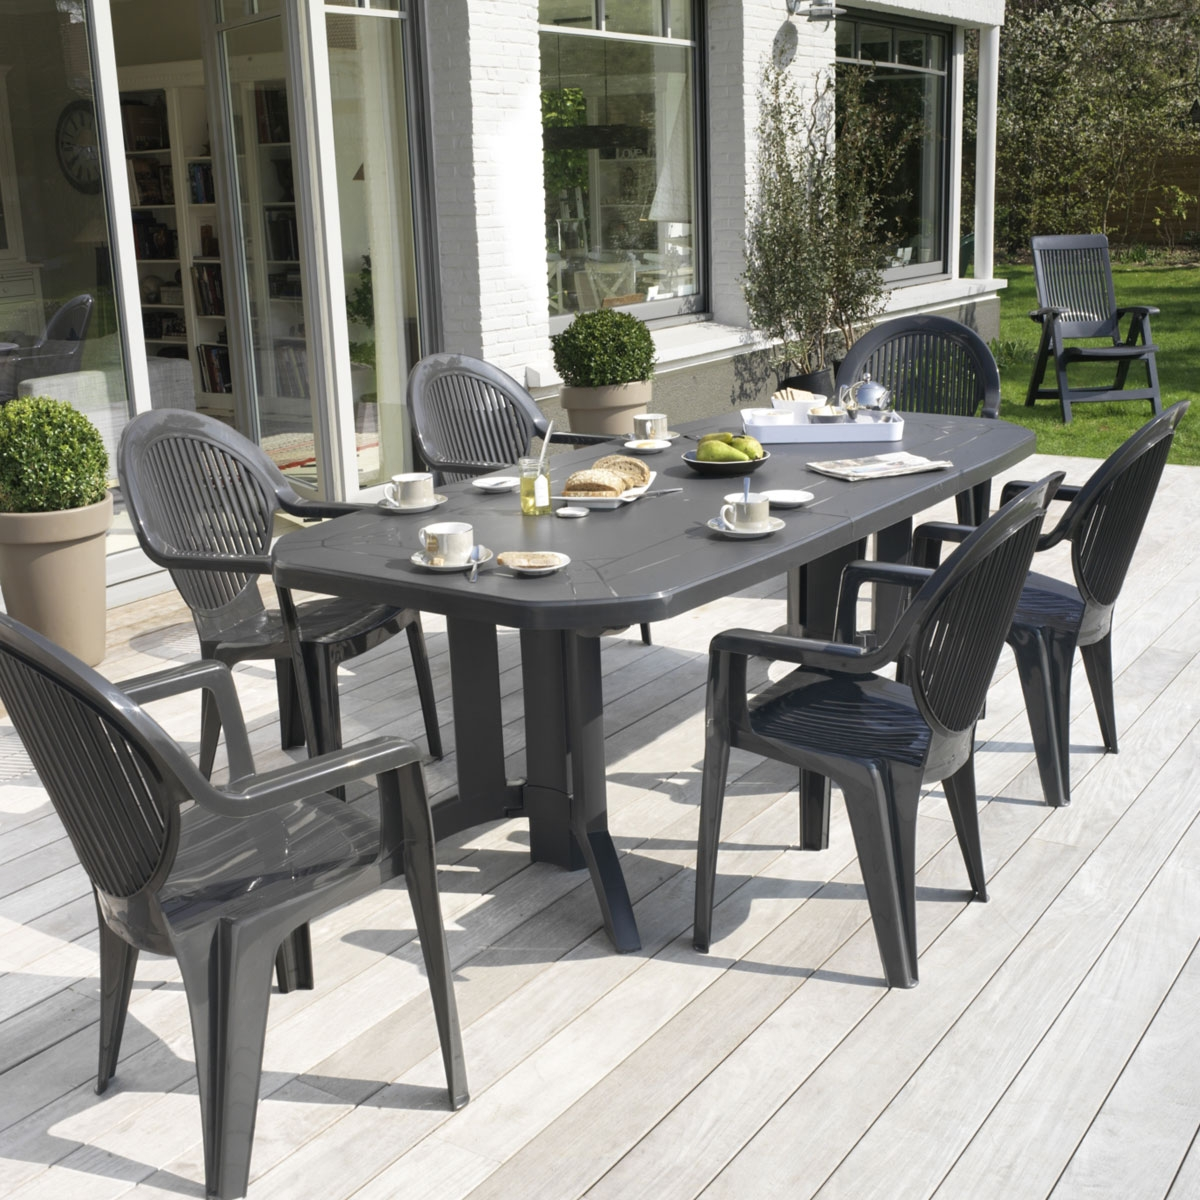 Table de jardin ovale design grosfillex vega 220x100x72 - Table jardin grofilex besancon ...